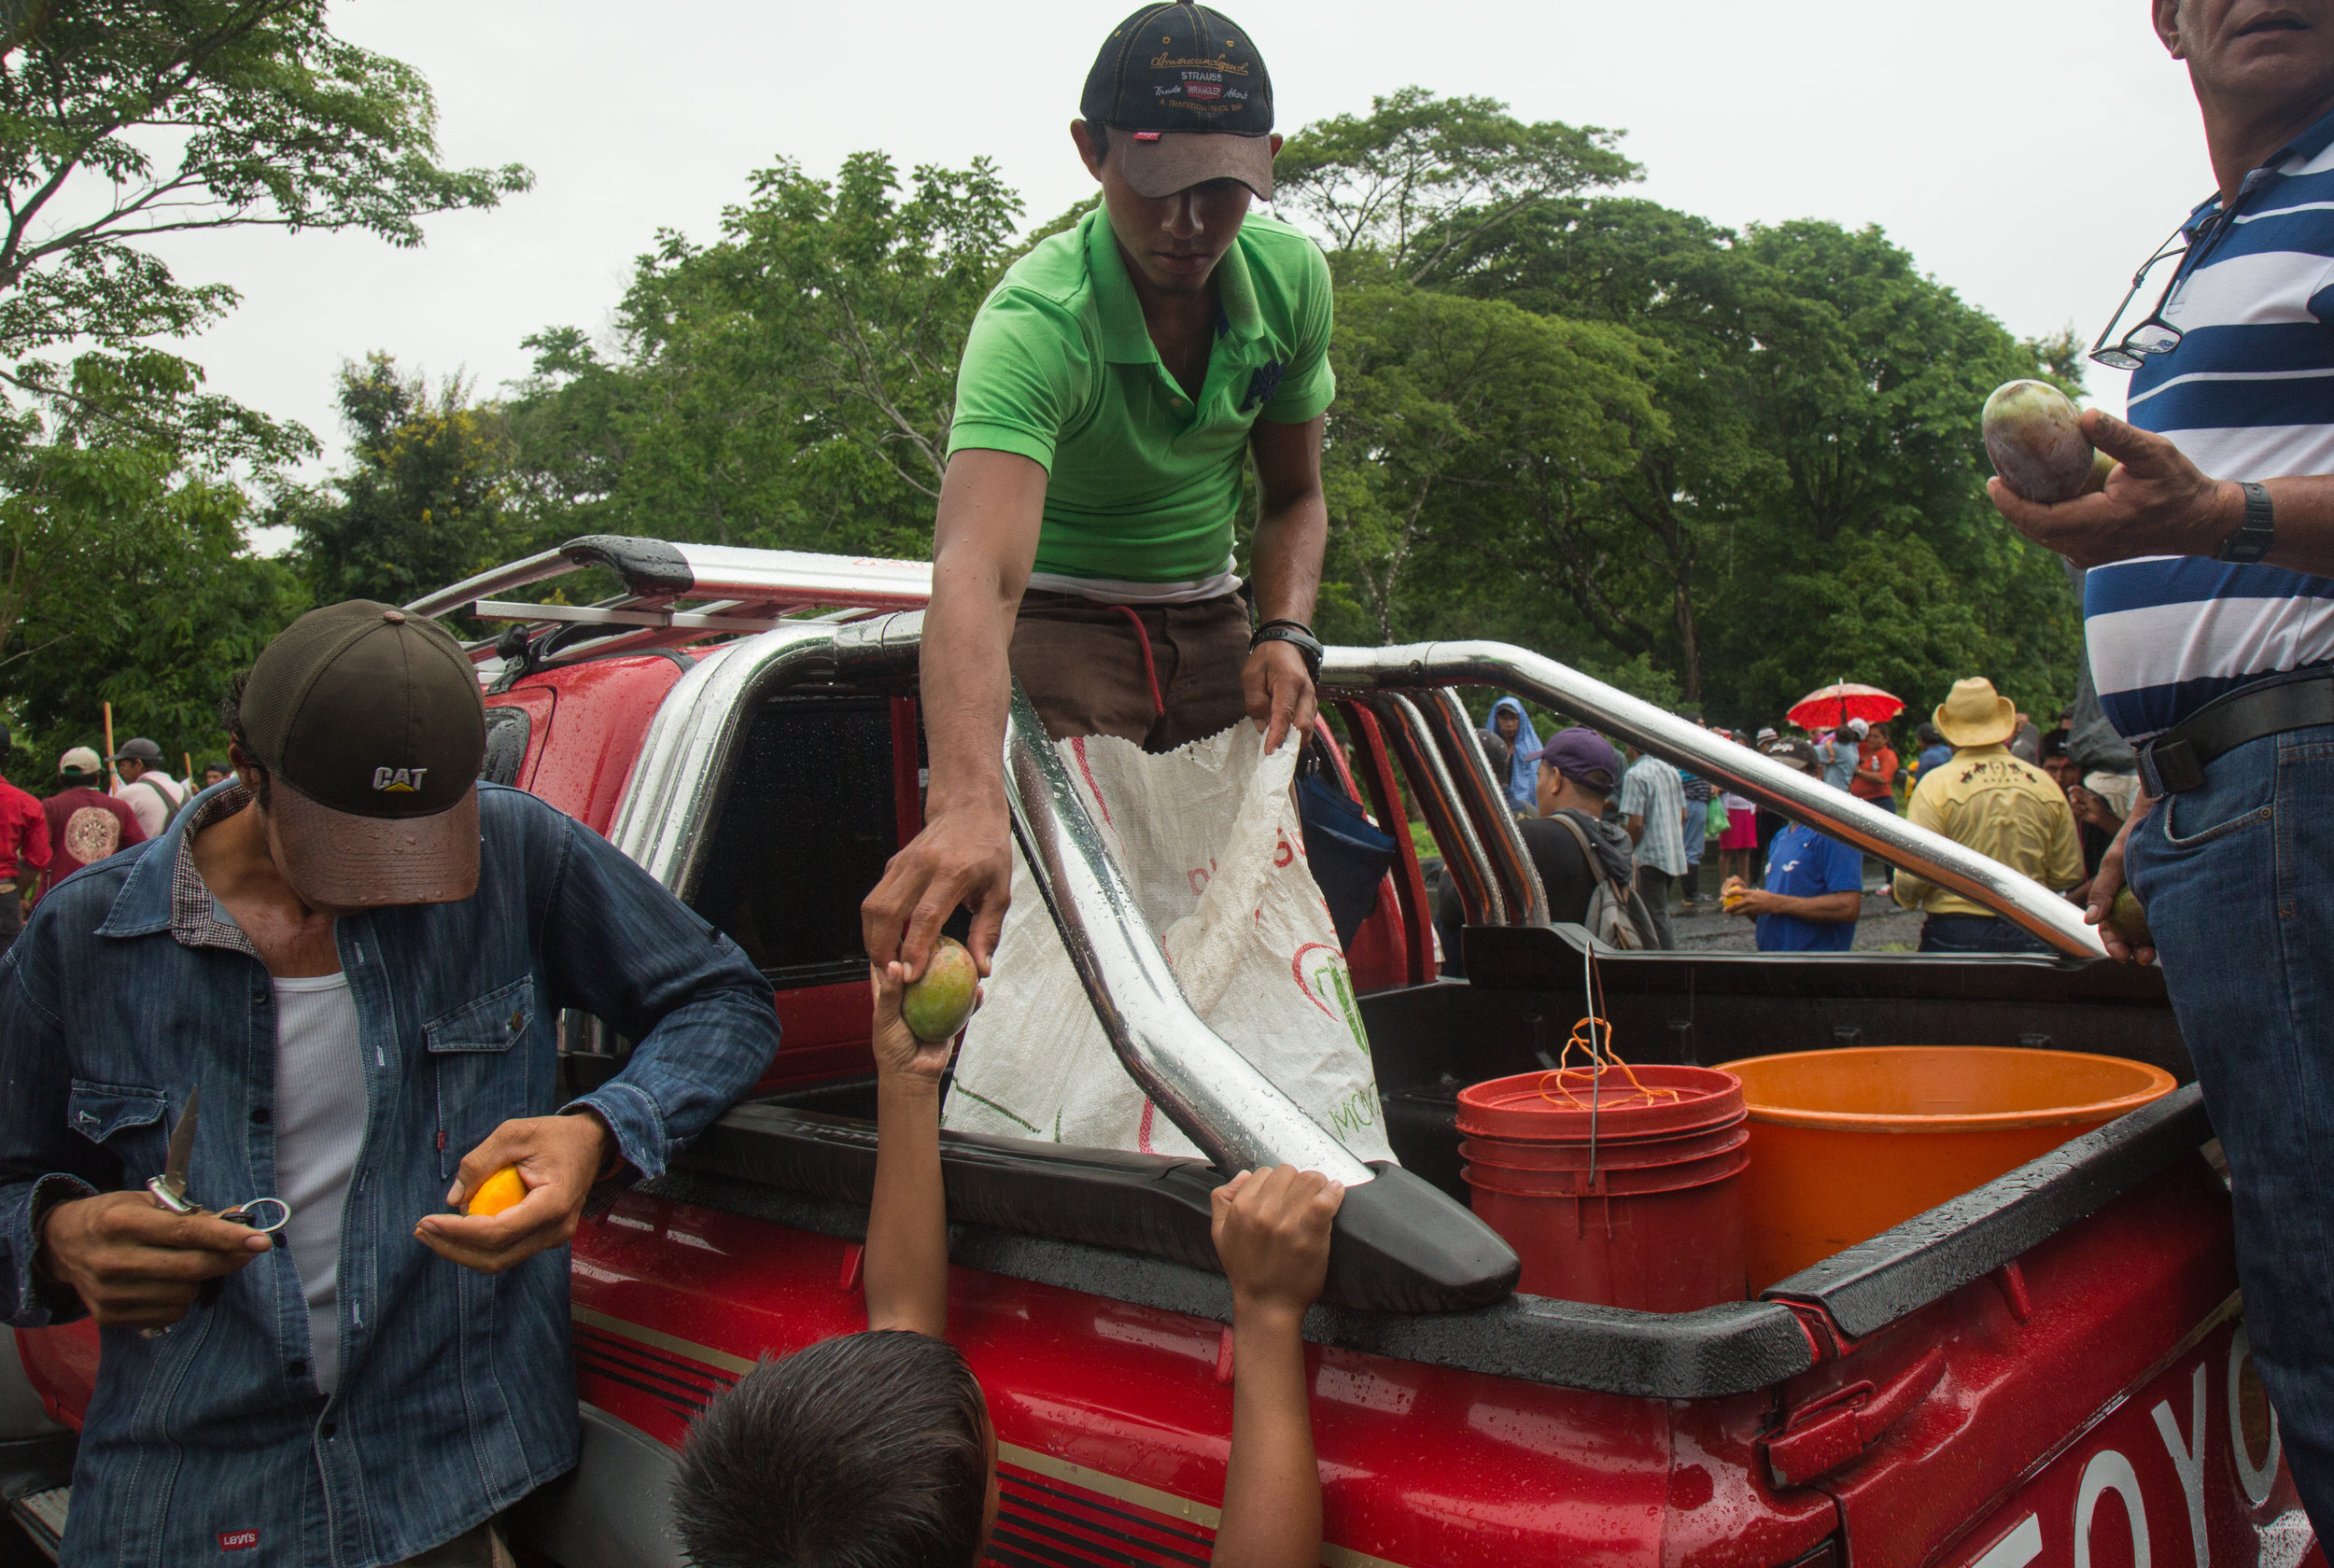 Members of the Consejo Nacional pass out mangos to hungry protesters at a protest against the Ley 840 and the Nicaraguan Canal project which could expropriate tens of thousands of familes' property's most of whom are small farmers, or campesinos. The protest in El Tule is on the same site as the protest on December 24, 2015 when police violently dispersed protesters with rubber bullets and tear gas, wounding multiple poeple including shooting out the eye of one man, and arresting more than 25 people. El Tule, Rio San Juan, Nicaragua